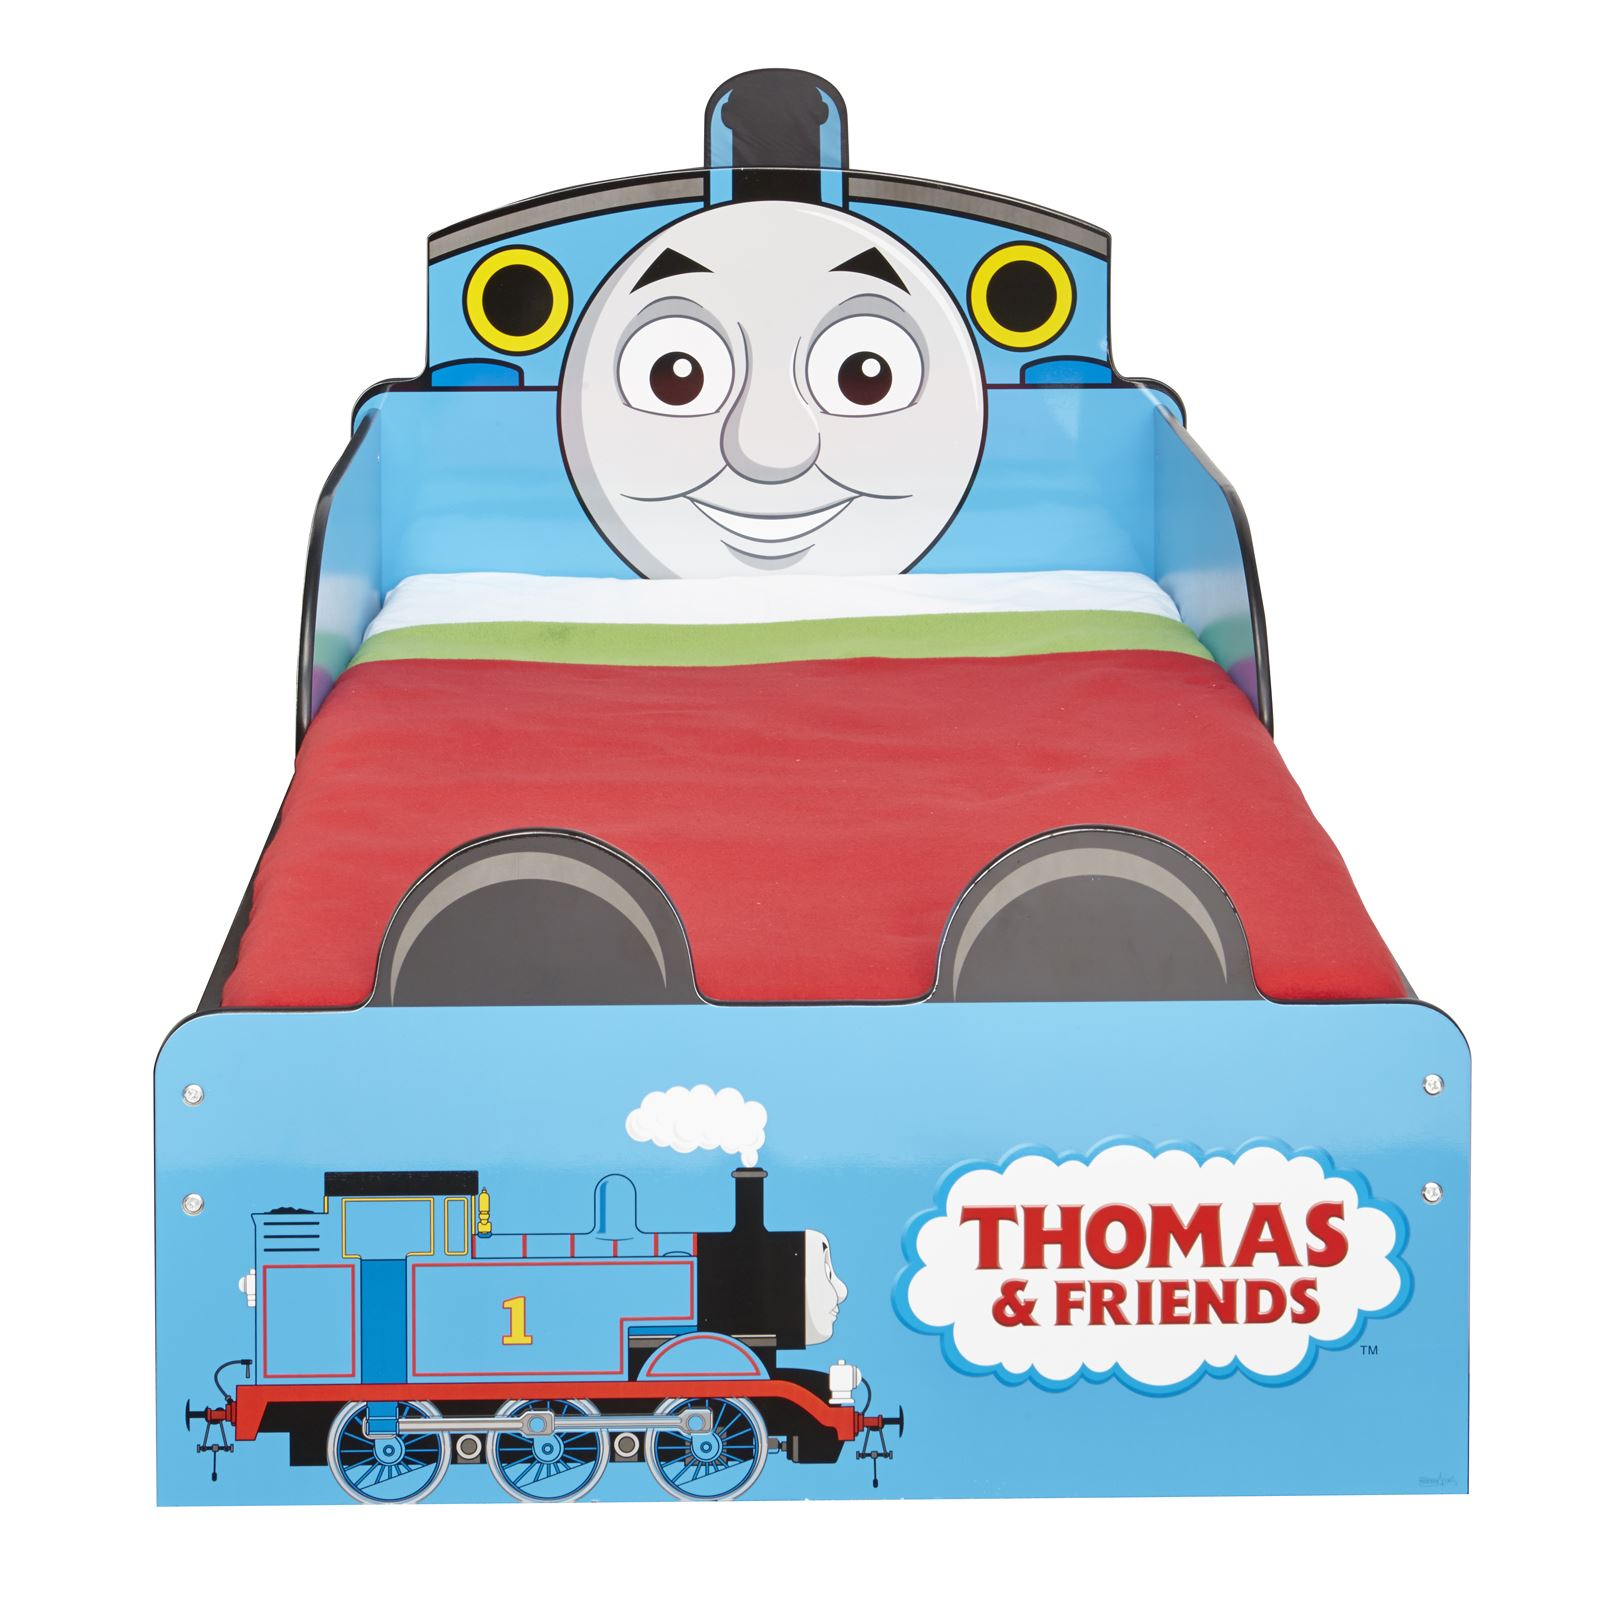 Thomas the tank engine wallpaper border - Thomas Friends Mdf Toddler Bed With Storage New Tank Engine Boys